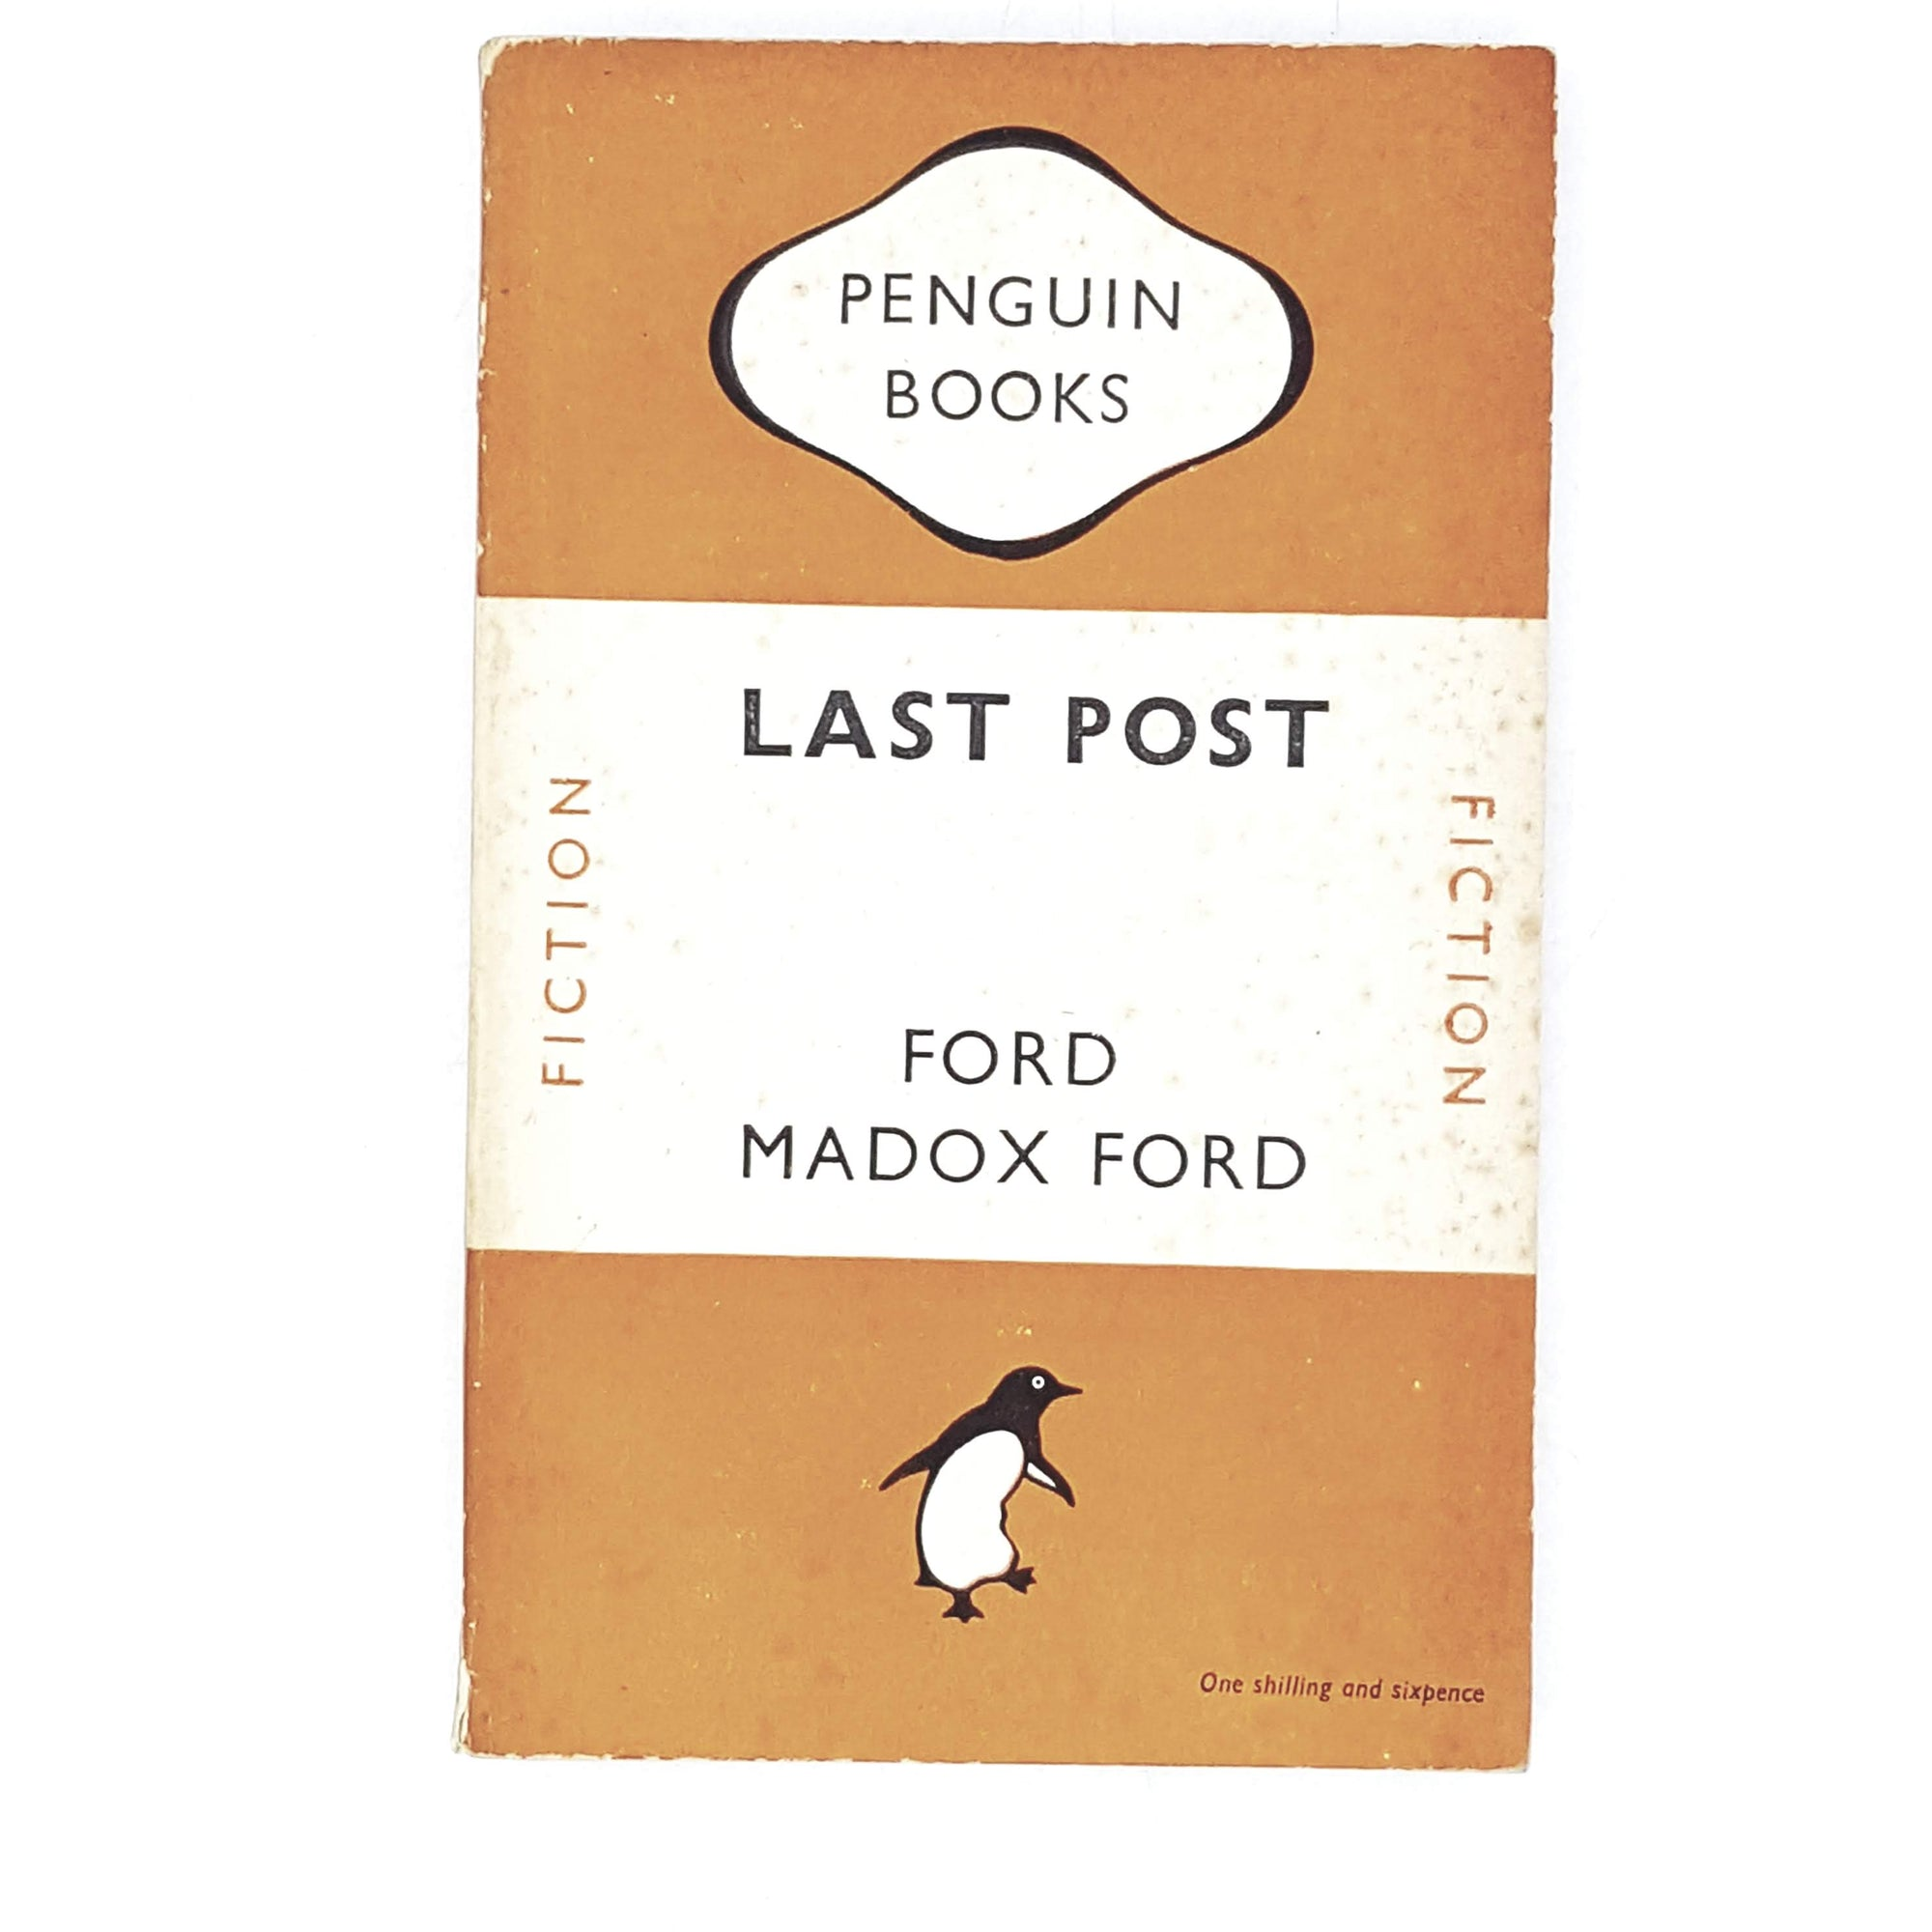 Vintage Penguin Last Post by Ford Maddox Ford 1948